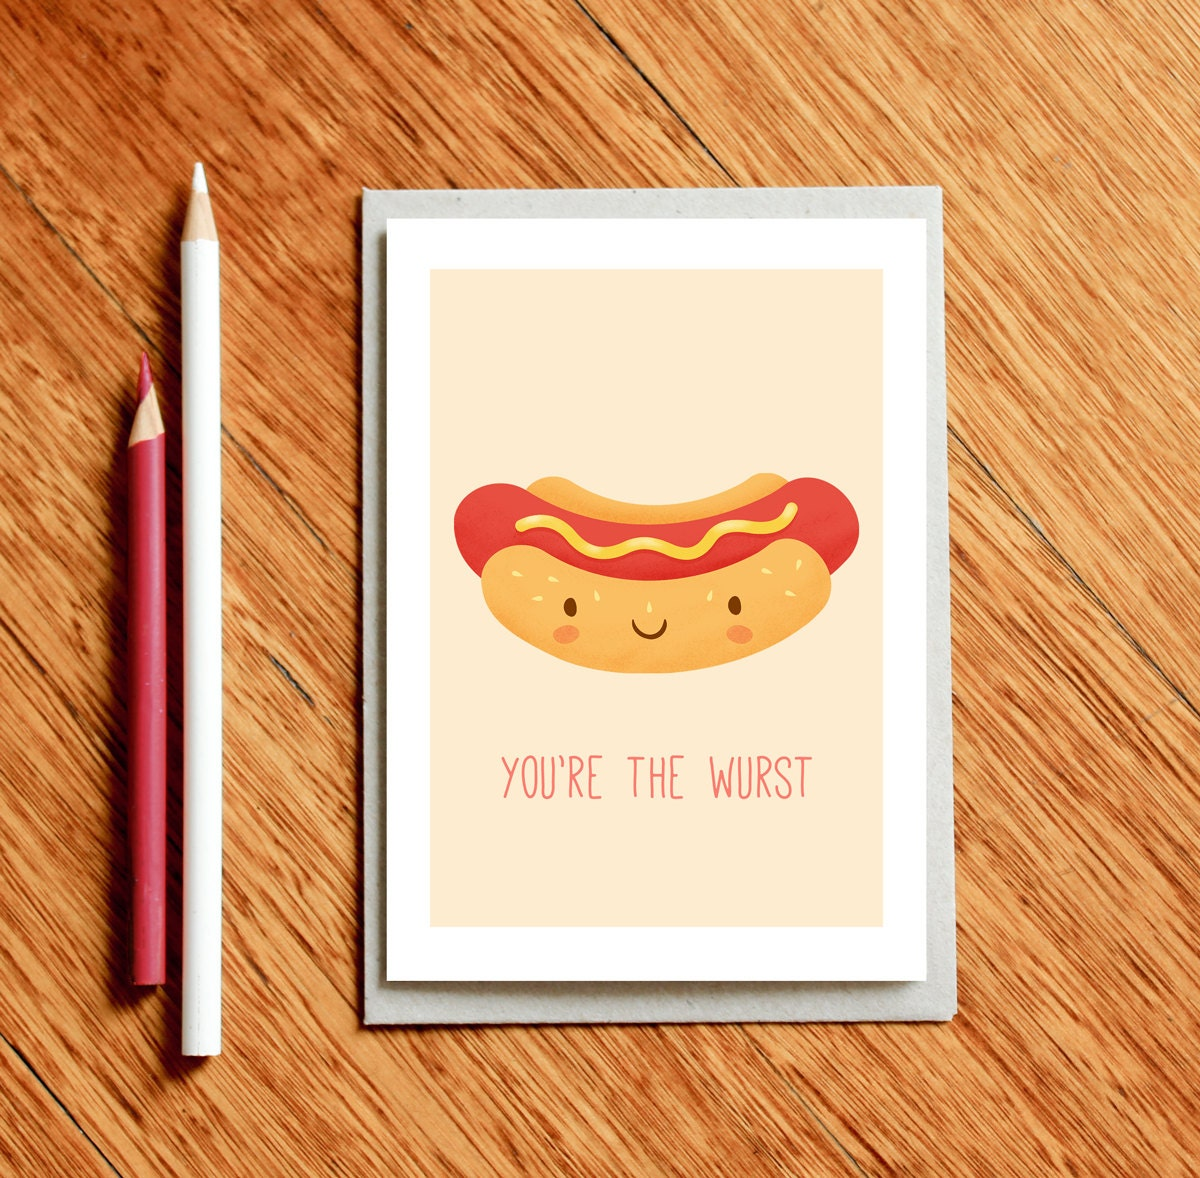 Hot Dog Funny Valentines Day Card Birthday Food Pun Anniversary Love Gift For Foodie